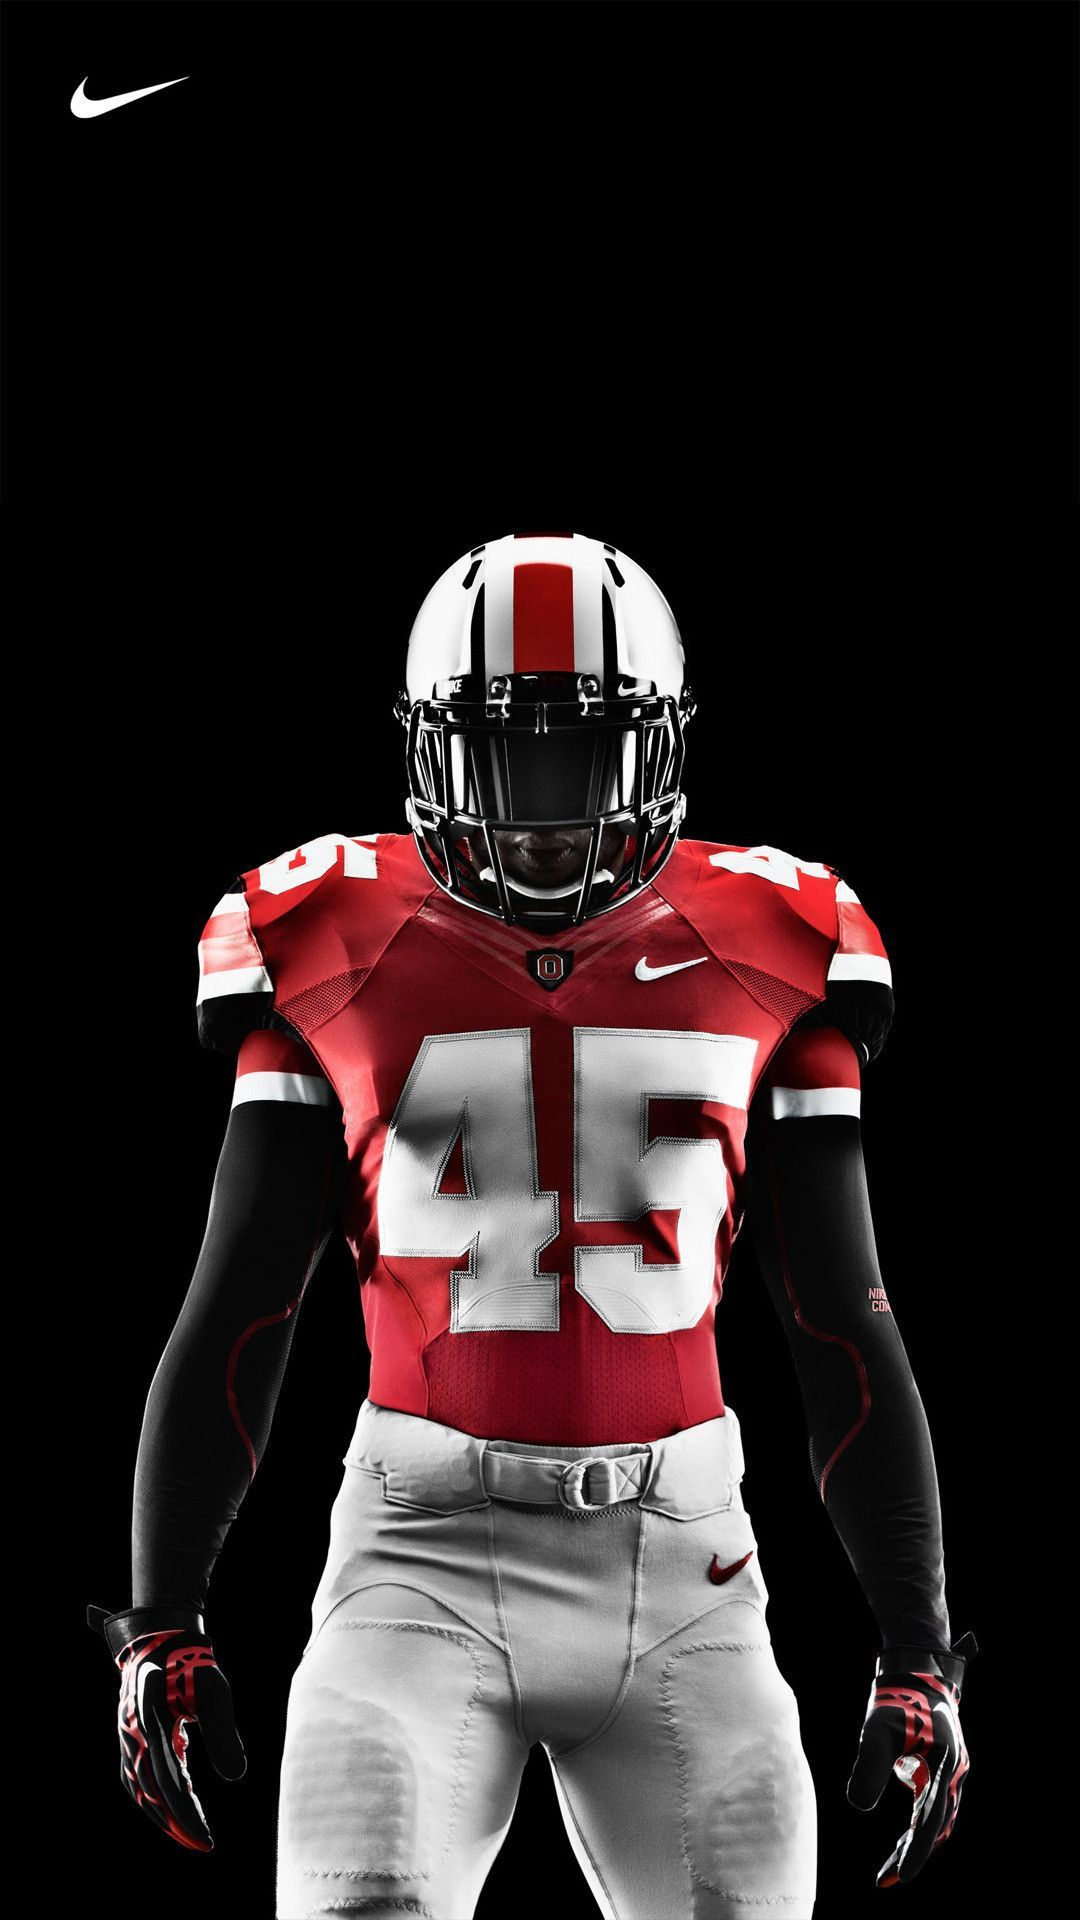 Ohio State Football Wallpaper In 2020 Duck Wallpaper Football Wallpaper Ohio State Football Wallpaper